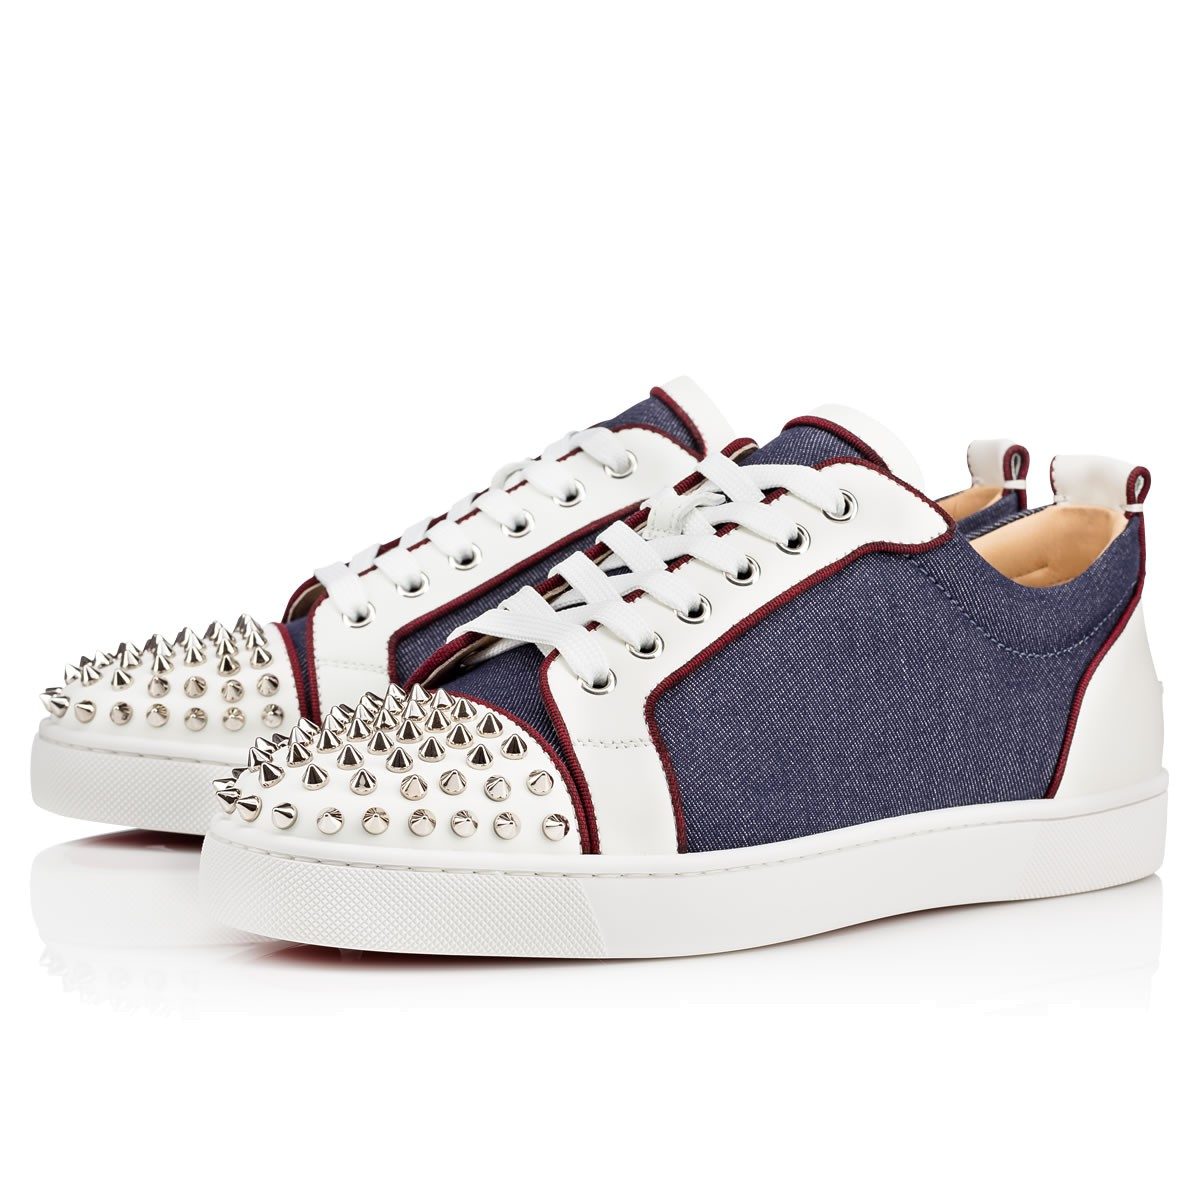 5f8c201fb74 Louis Junior Spikes Orlato Men's Flat Version Blue/Silver Leather - Men  Shoes - Christian Louboutin